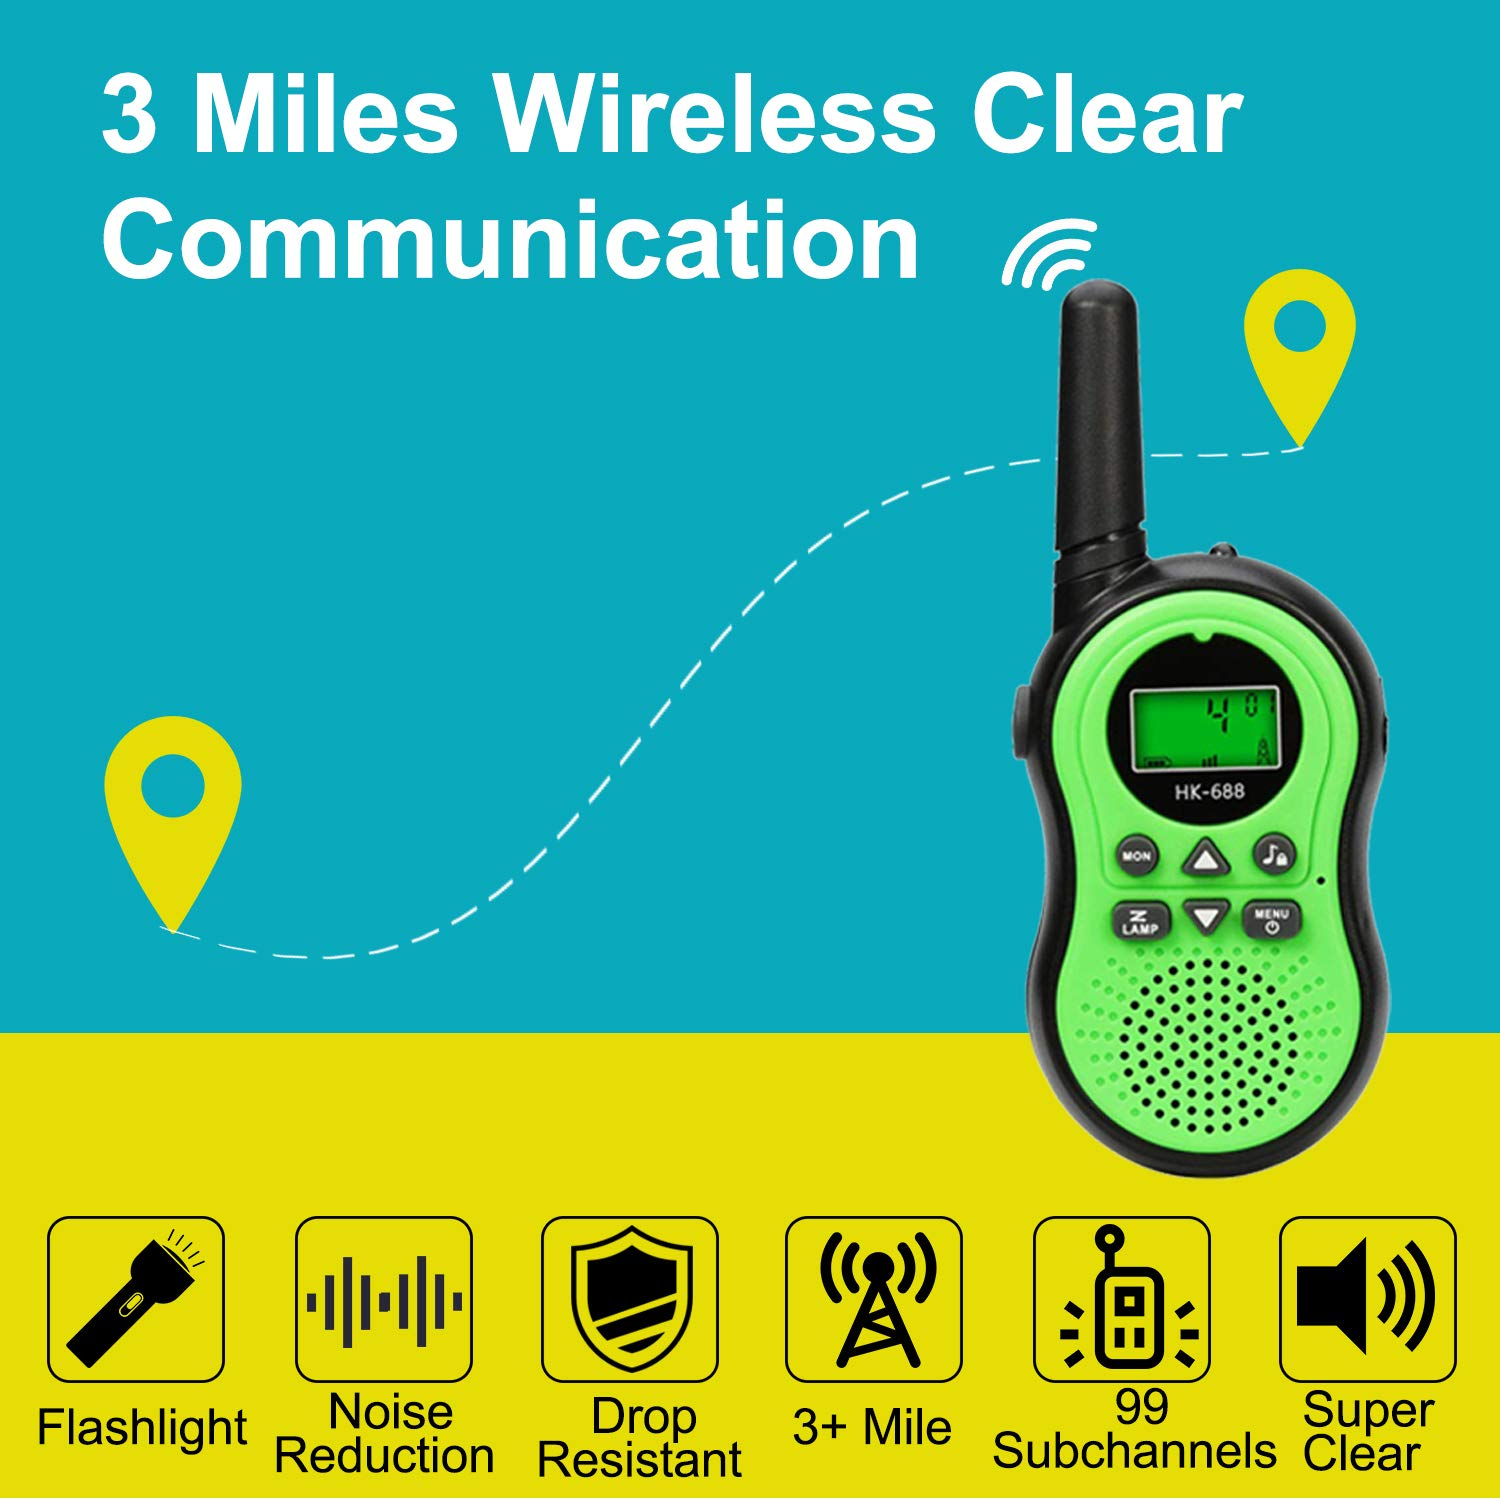 6 Pack Kids Walkie Talkies Outdoor Indoor Toys for Boy Girl 22 Channels Two Way Range Up to 3 Miles Flashlight FRS Radio Handheld Walkie Talkie Adventure Camping Game Back to School Birthday Best Gift by Camlinbo (Image #4)